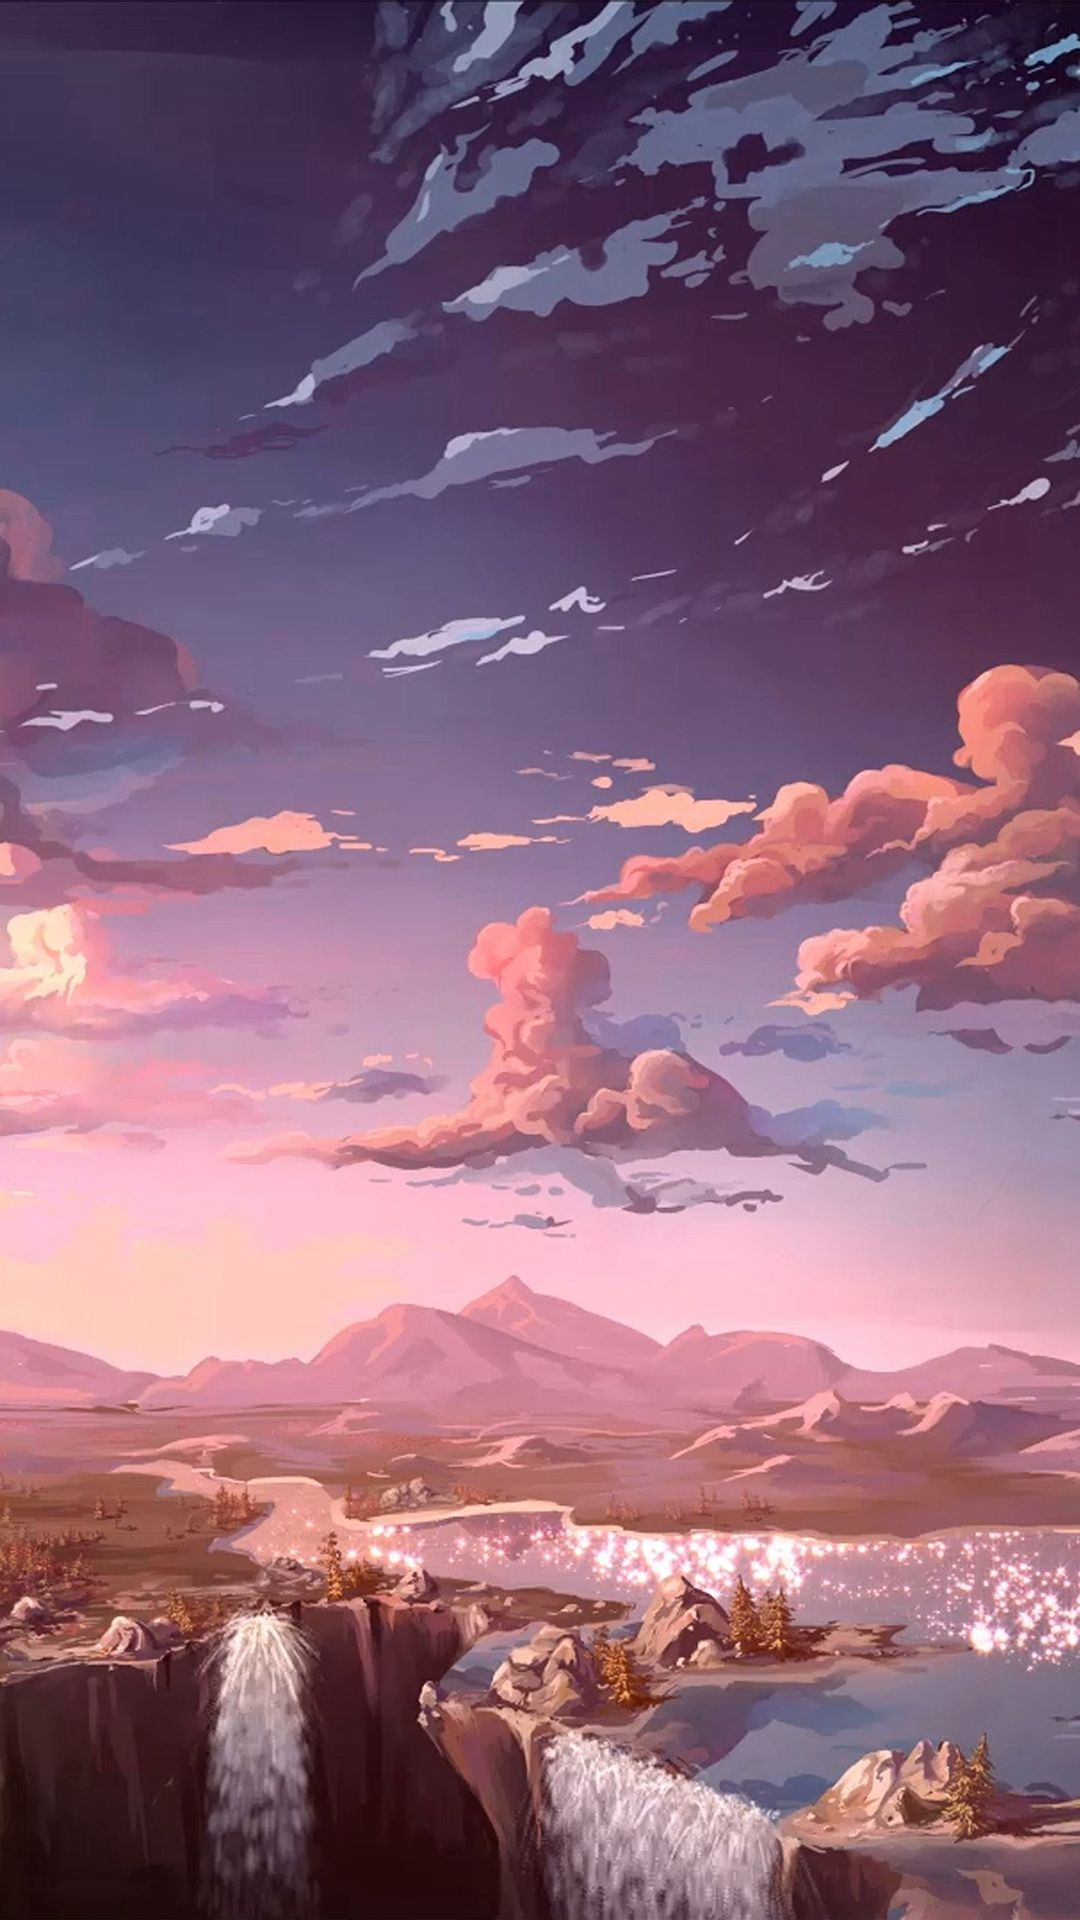 Aesthetic Backgrounds Hd Posted By John Cunningham